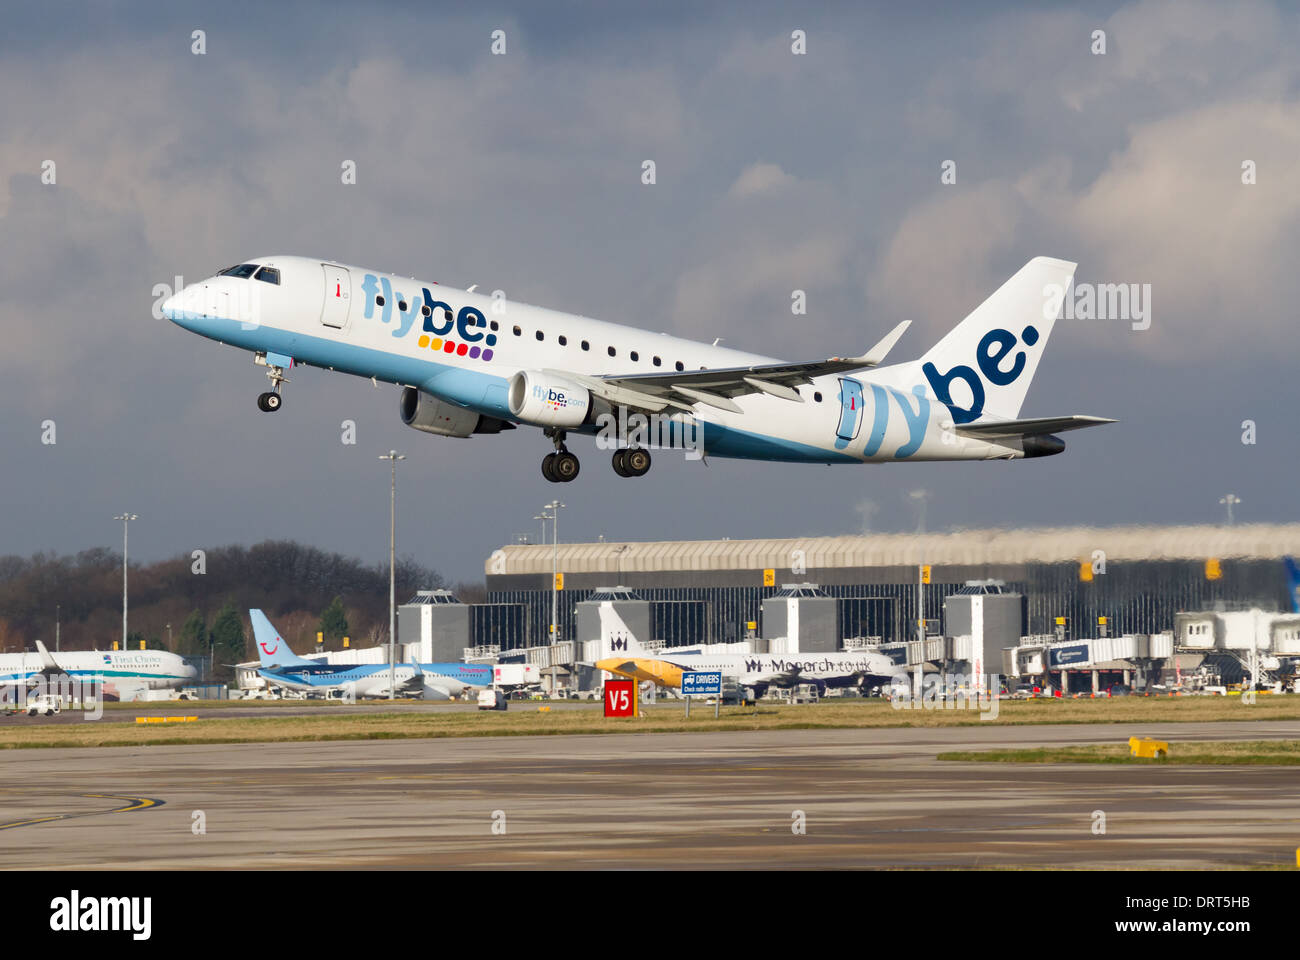 Flybe Embraer ERJ170-200STD G-FBJH taking off from Manchester Airport - Stock Image